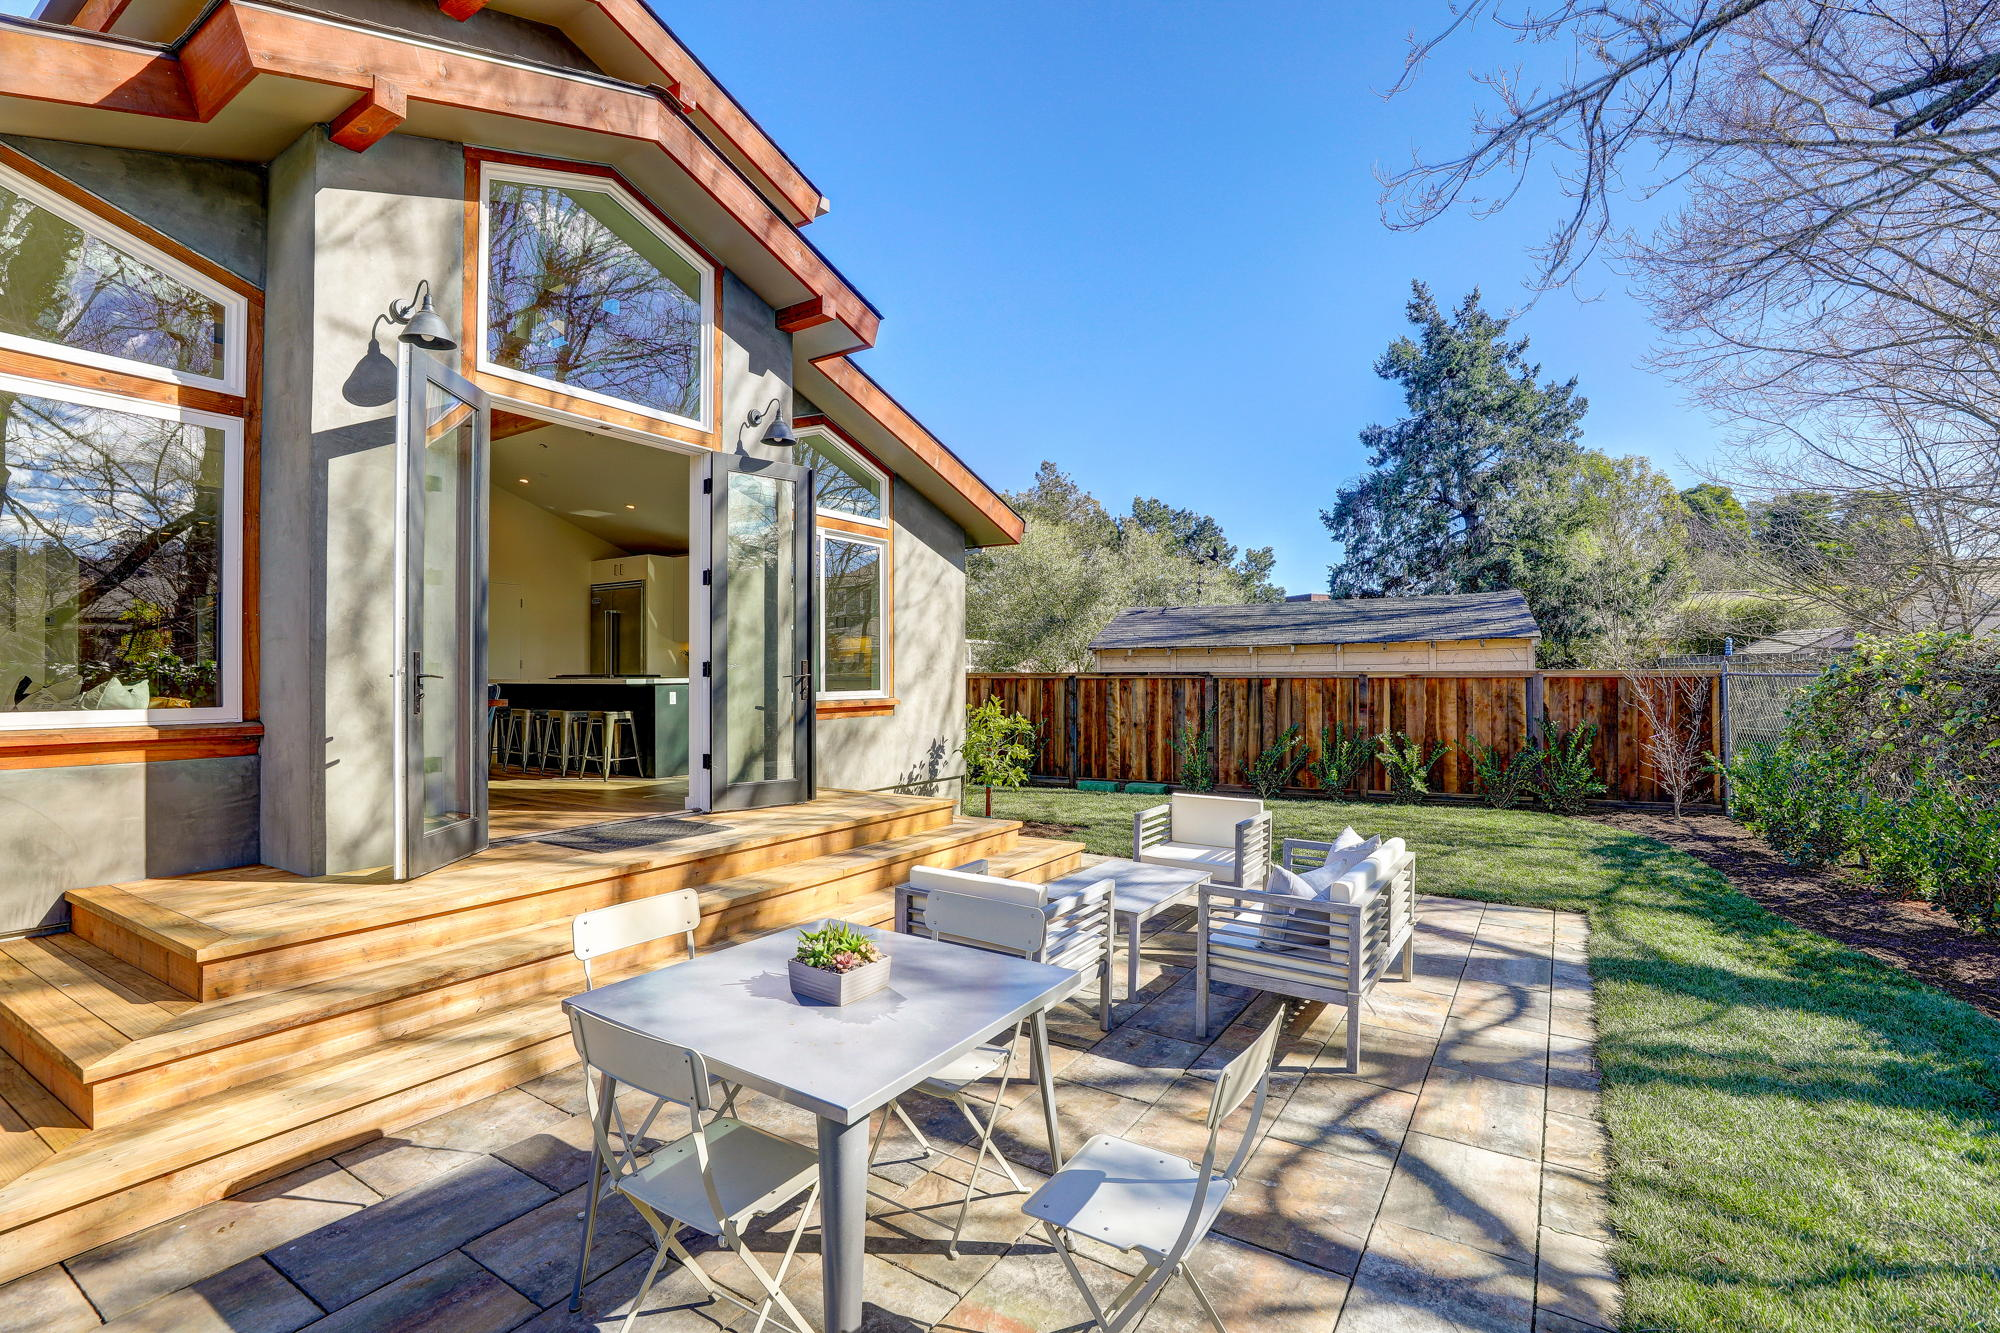 38 Ryan Avenue, Mill Valley - Sycamore Park Homes for sale - 54- Listed by Team Own Marin with Compass Real Estate.jpg